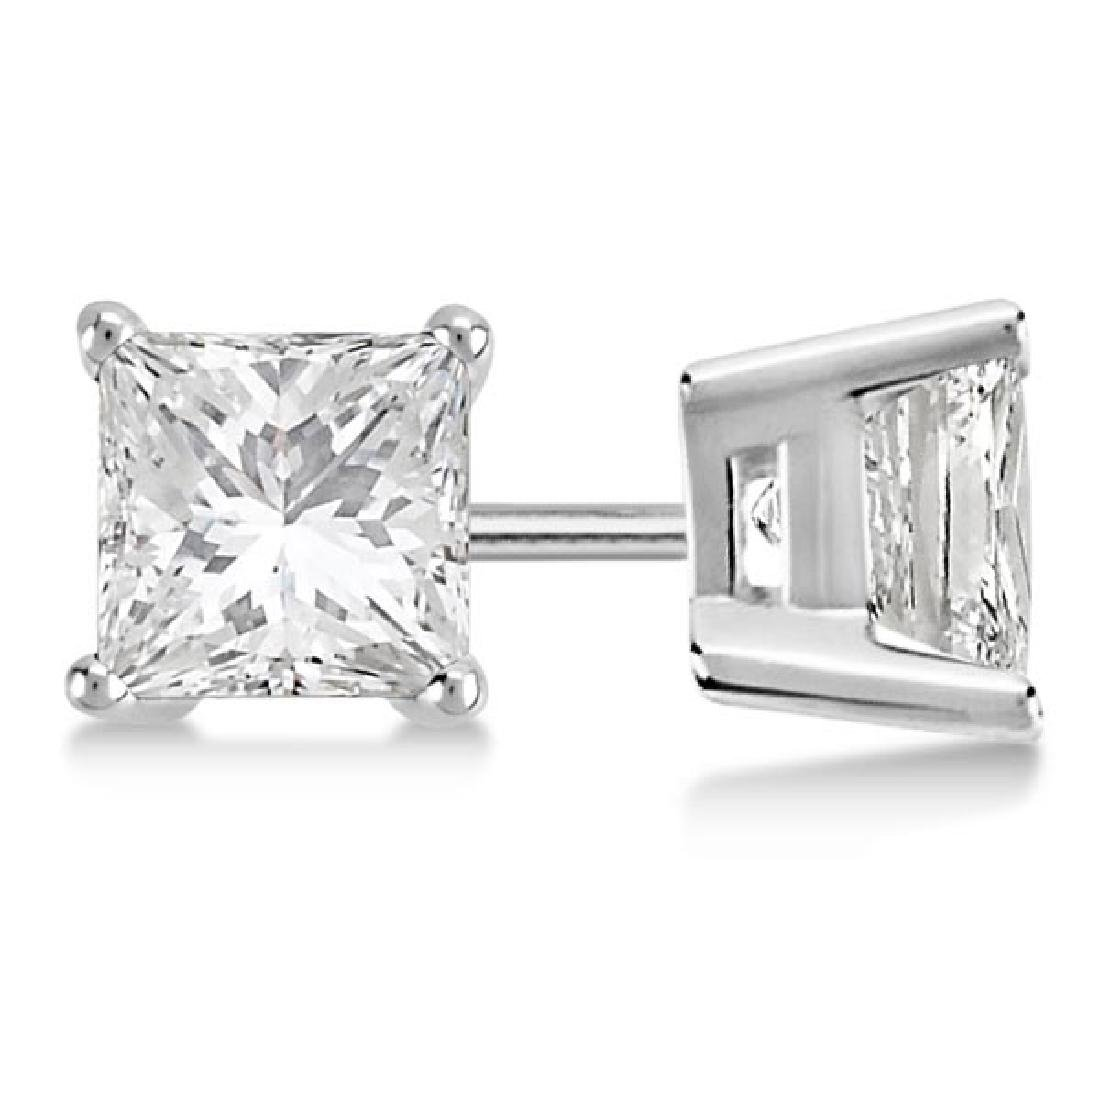 Certified 1.02 CTW Princess Diamond Stud Earrings D/SI2